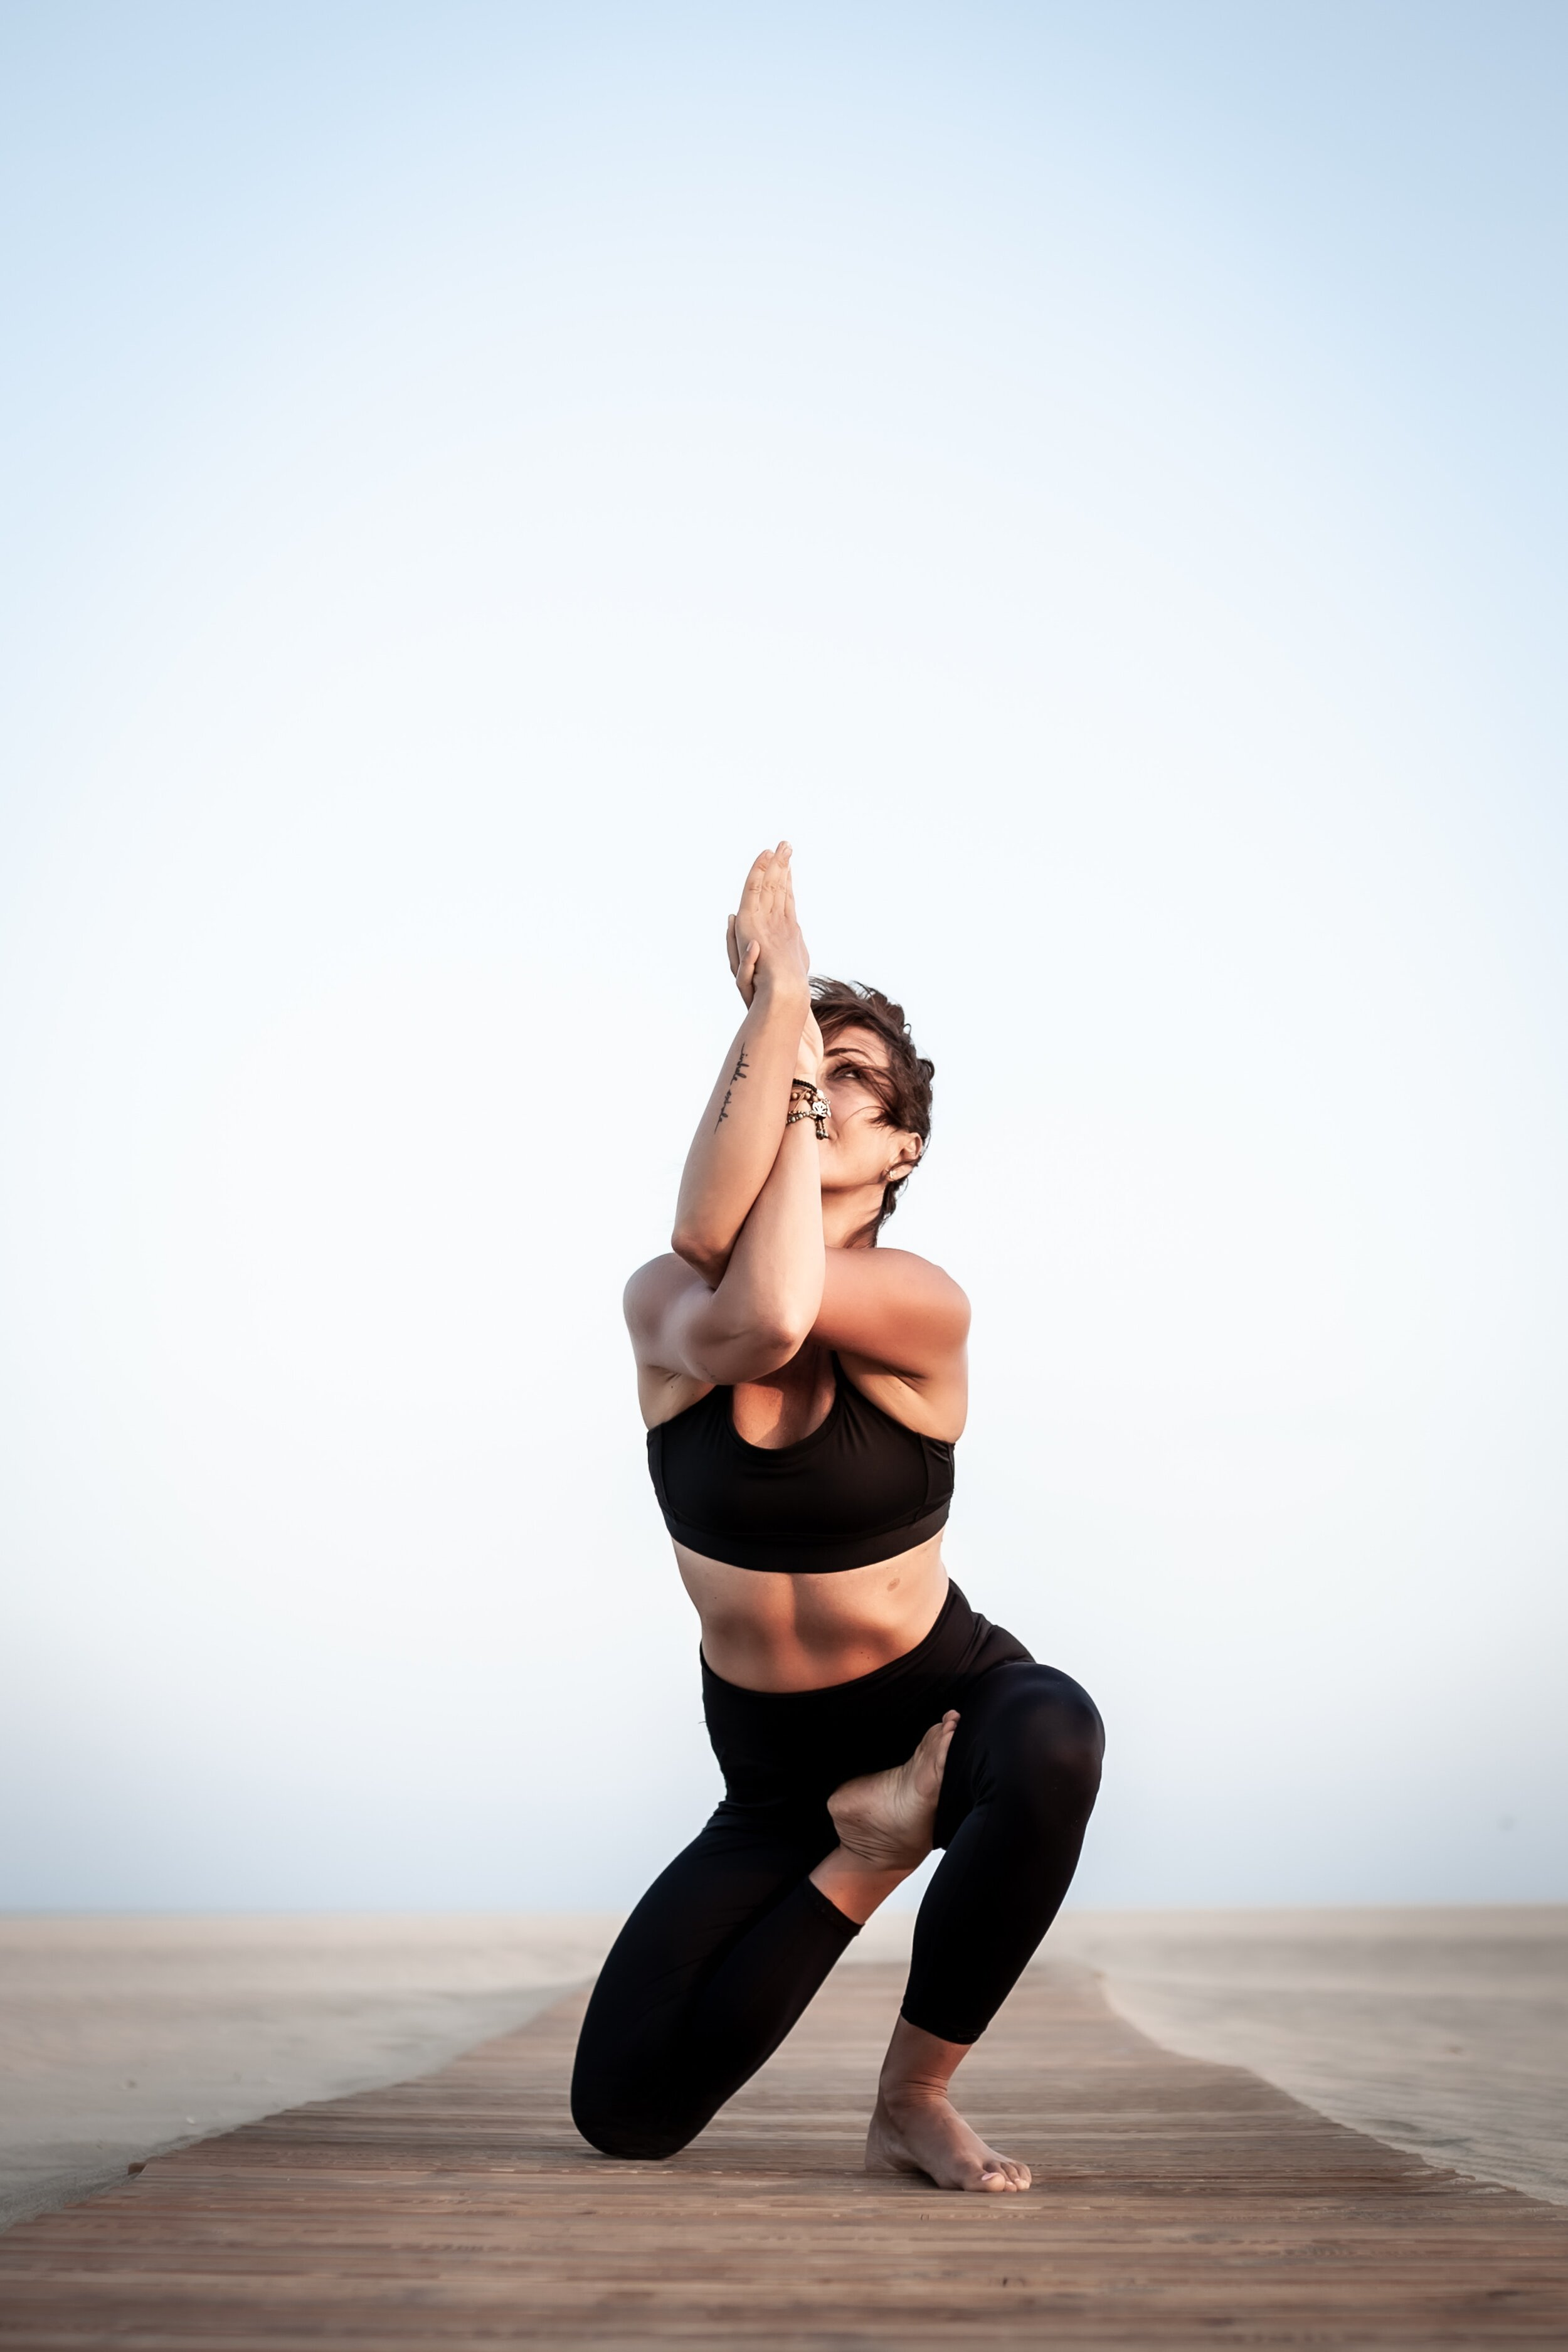 """As the yoga industry gains momentum, I receive frequent inquiries from new students interested in taking a class. In addition to logistics and scheduling, they often ask what they should be prepared for. My stripped down answer for them is something like, """"Wear comfortable clothes, bring your yoga mat, some water, a small towel, and be ready to move your body and sweat!"""" In most cases, that's all a student really needs to know. -"""